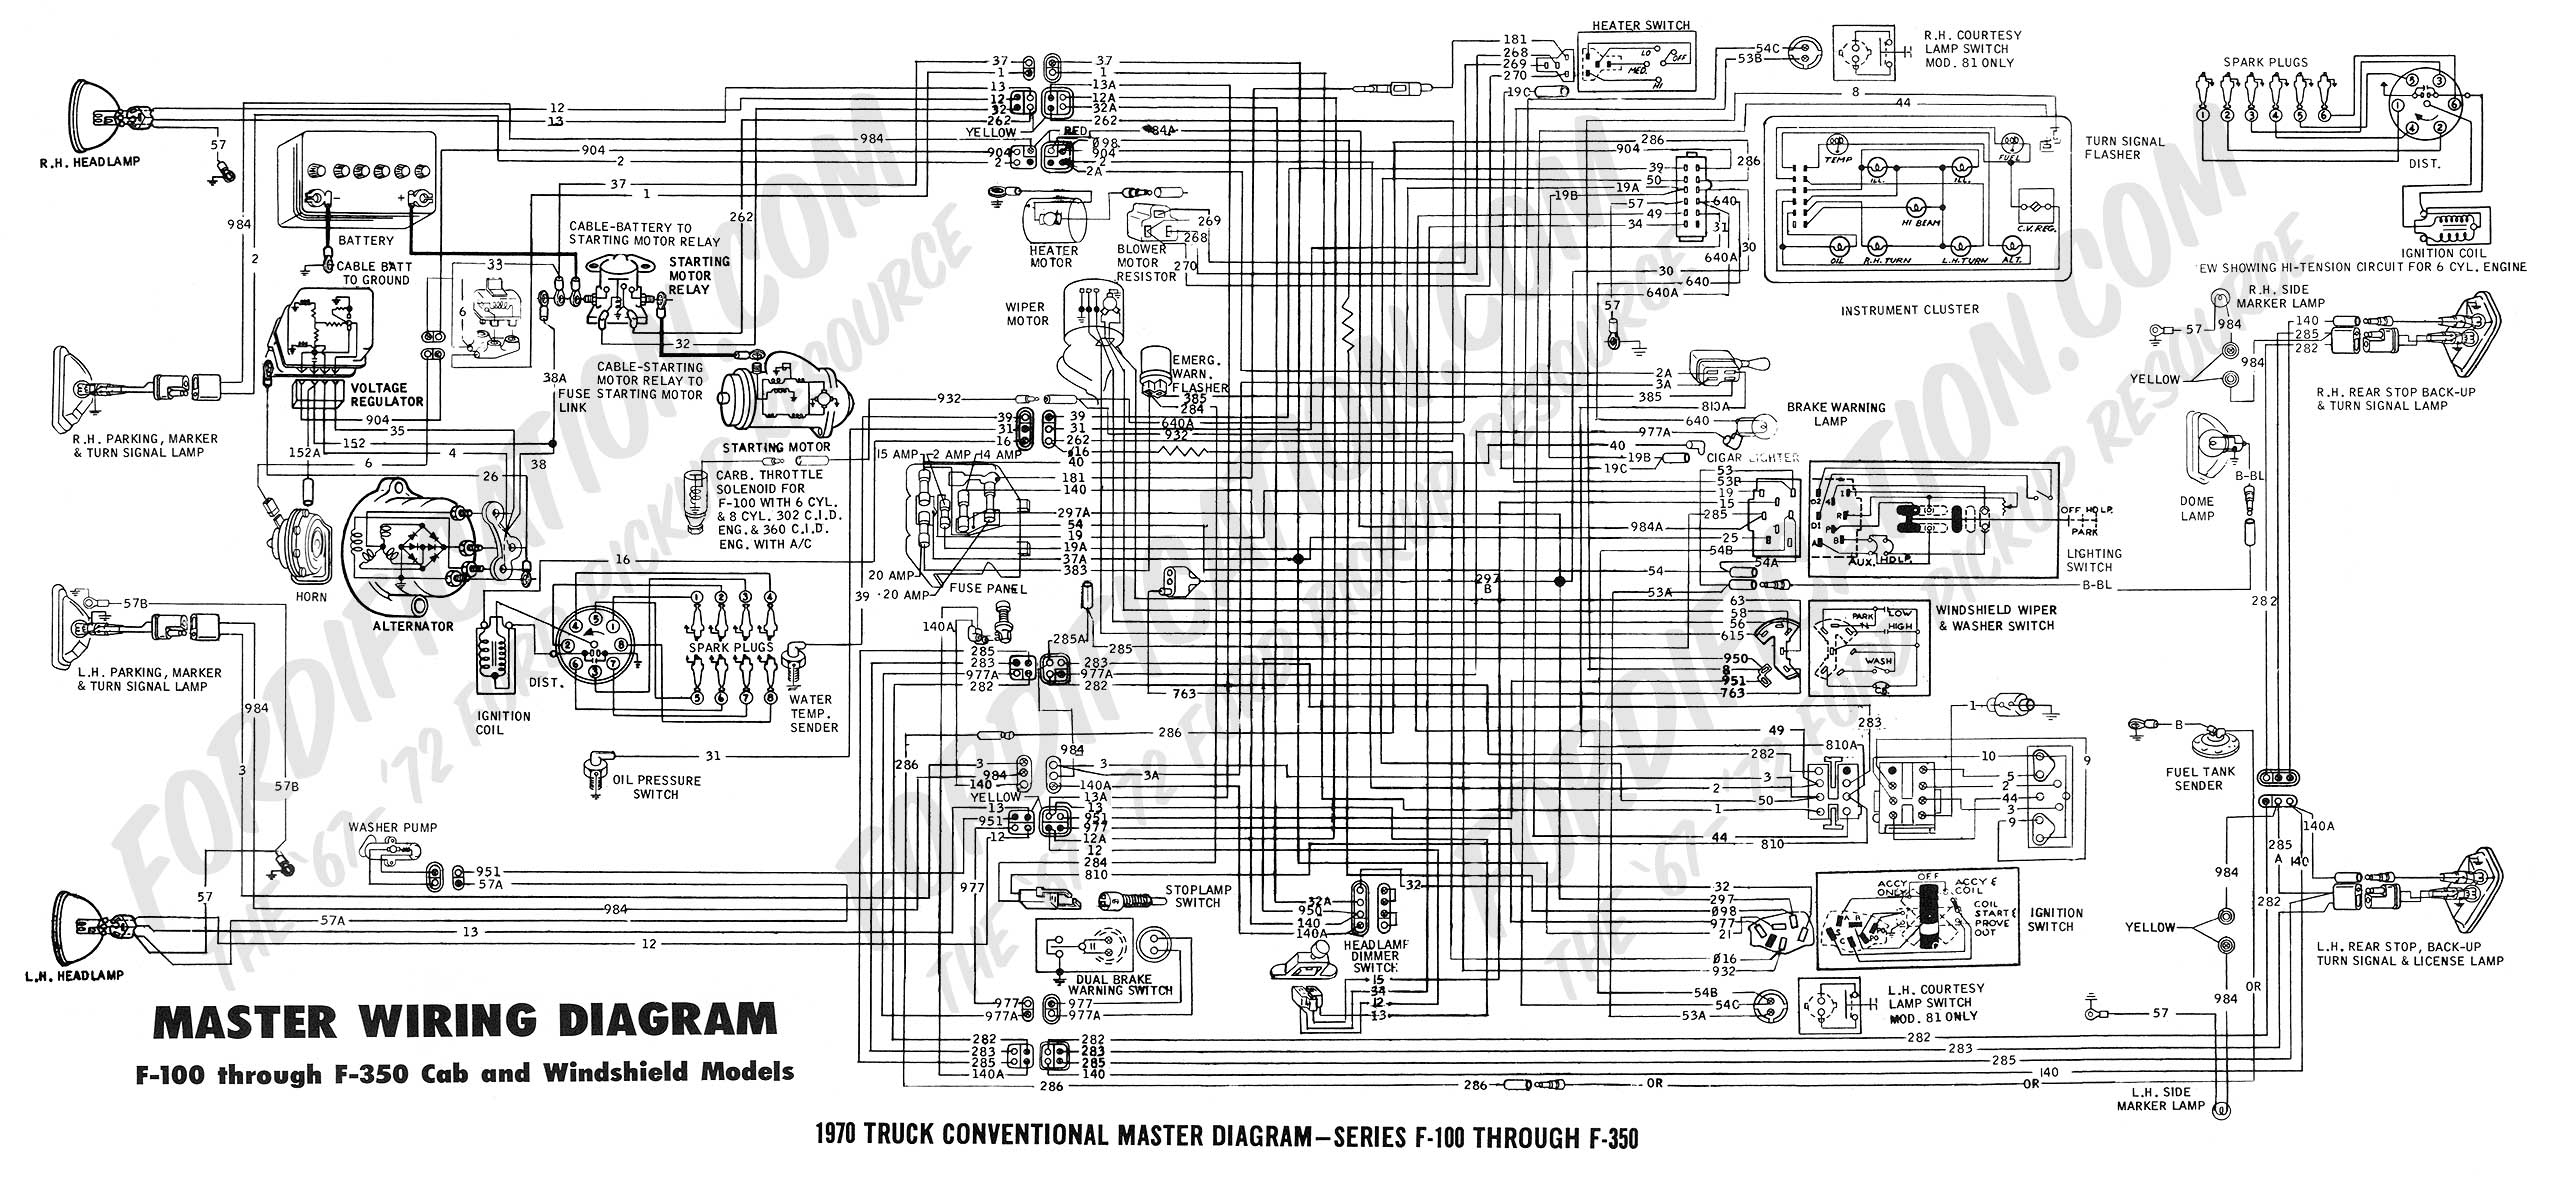 F250 Wiring Diagram - Wiring Diagrams Click - F350 Wiring Diagram Trailer